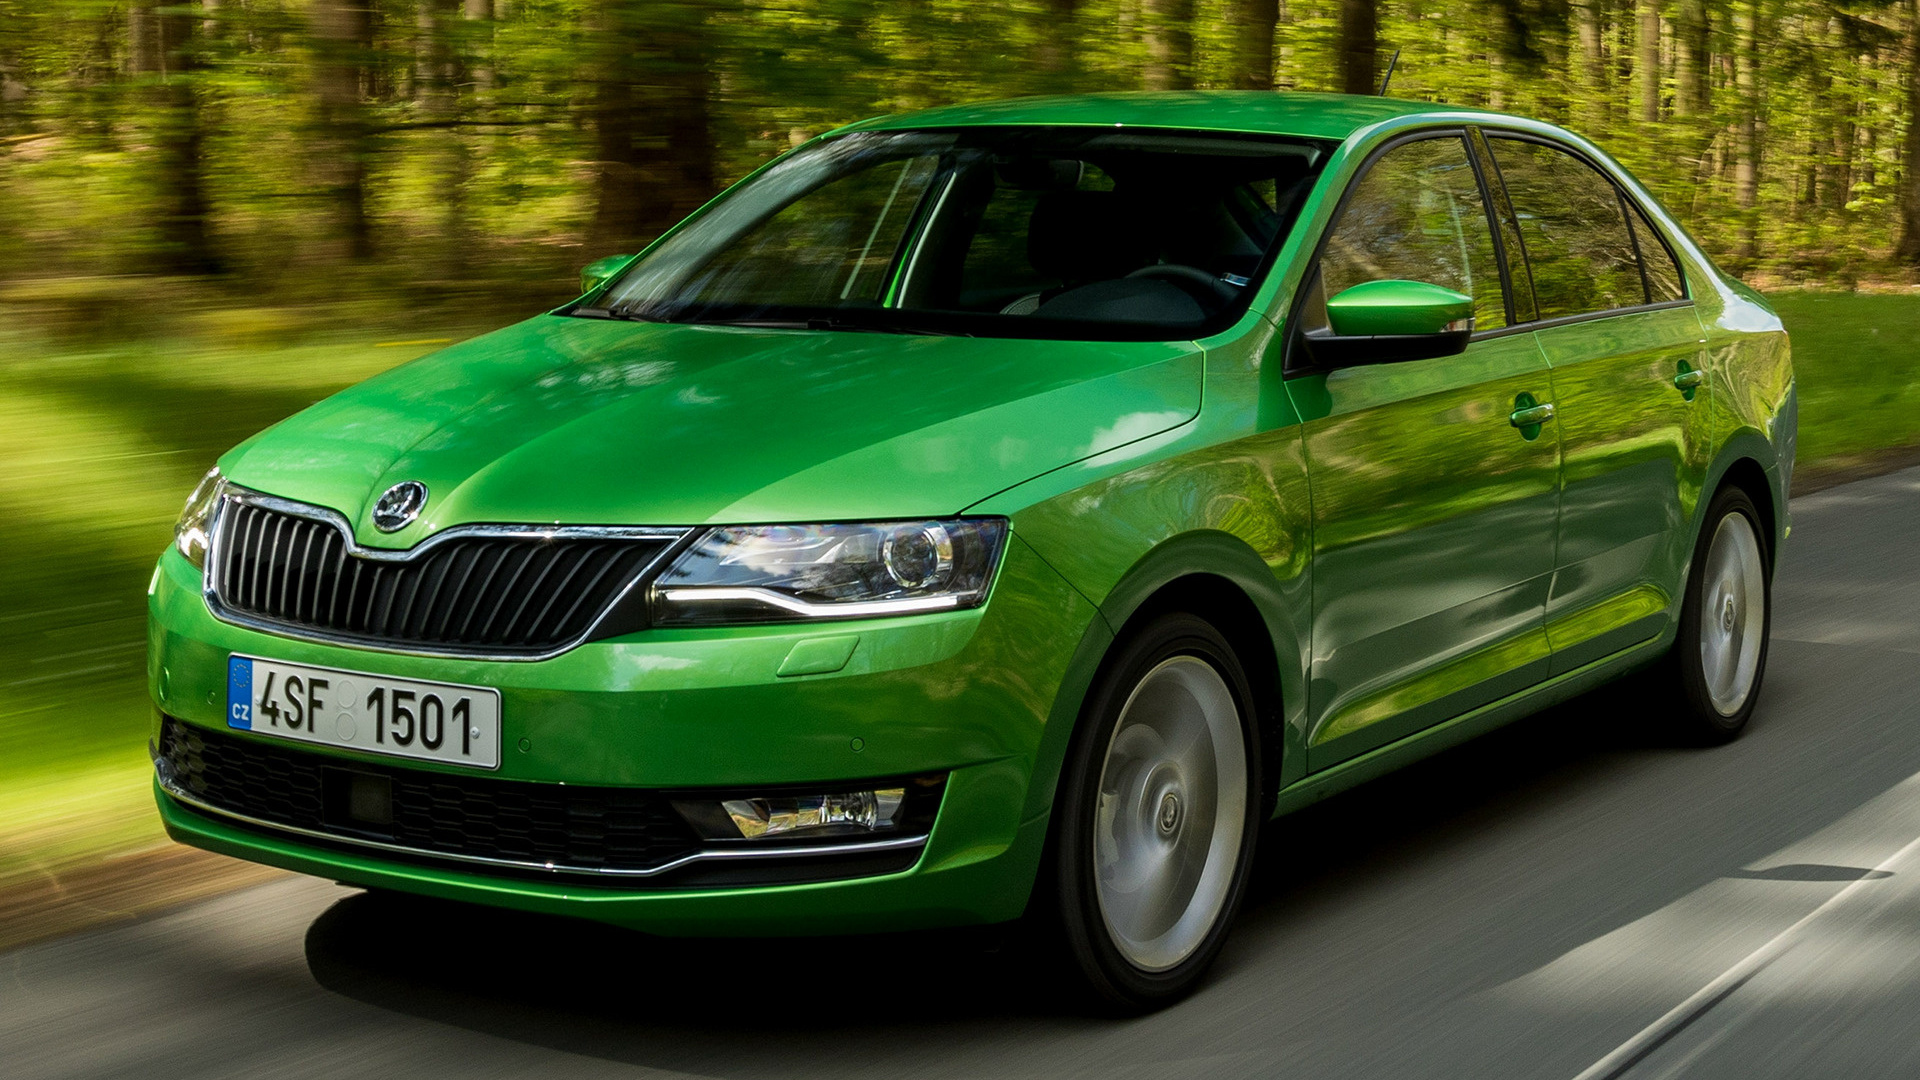 2017 Skoda Rapid Wallpapers And Hd Images Car Pixel